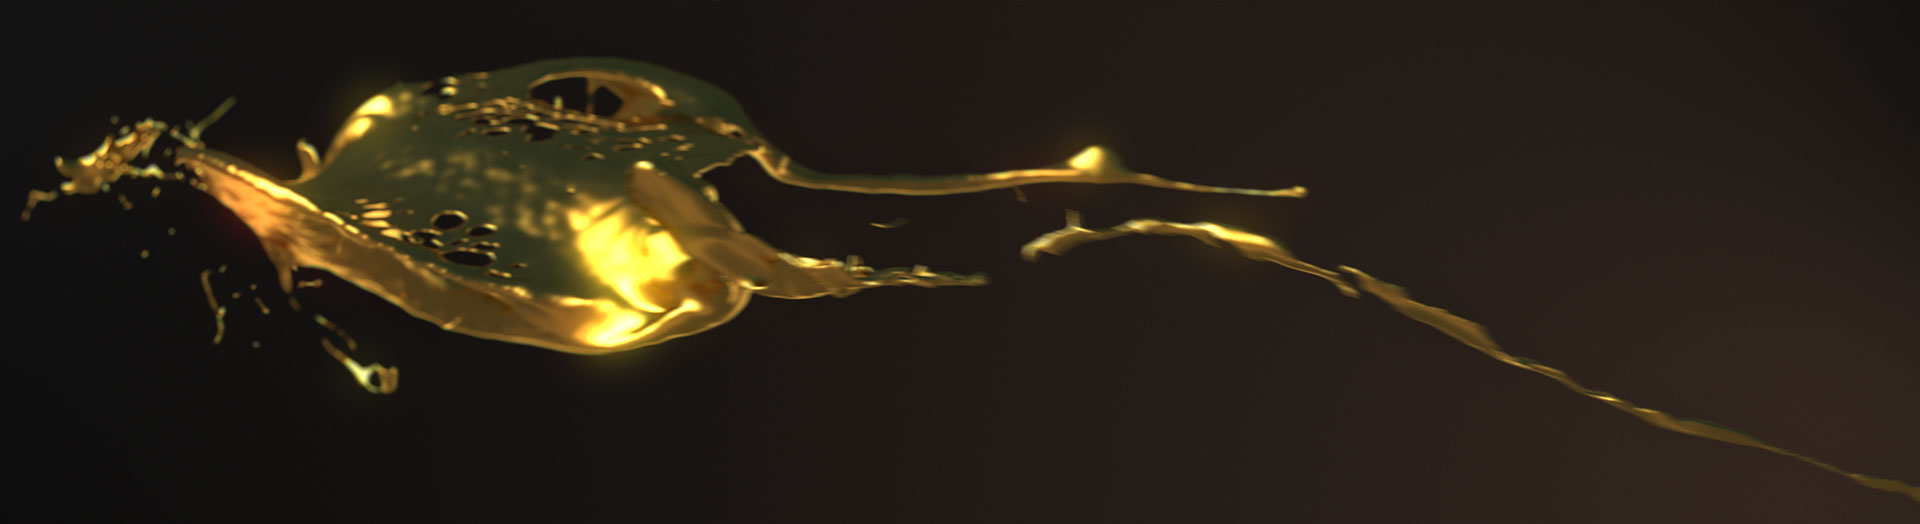 liquid gold animation from the Wonder of Gold Exhibition